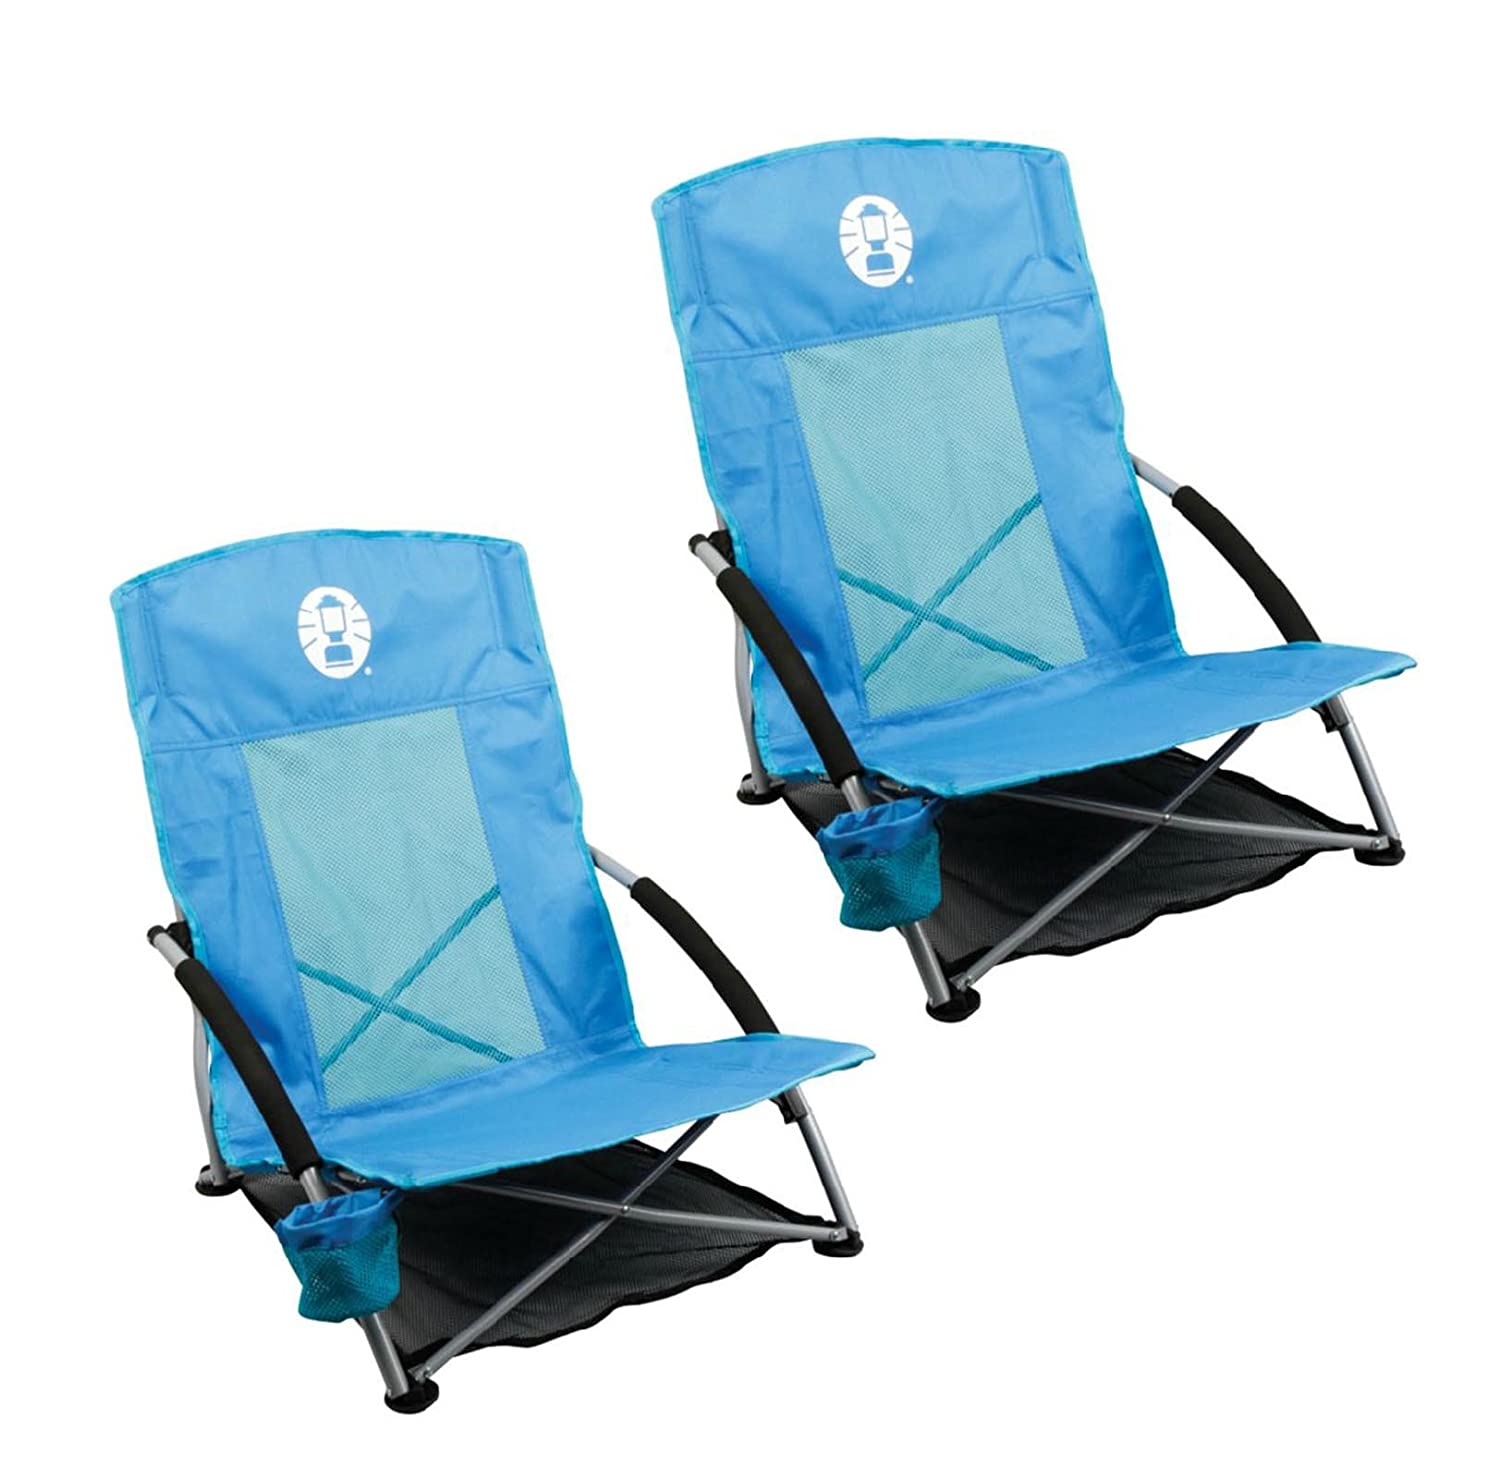 Amazon 2 COLEMAN Low Sling Day Trip Beach Camping Chairs w